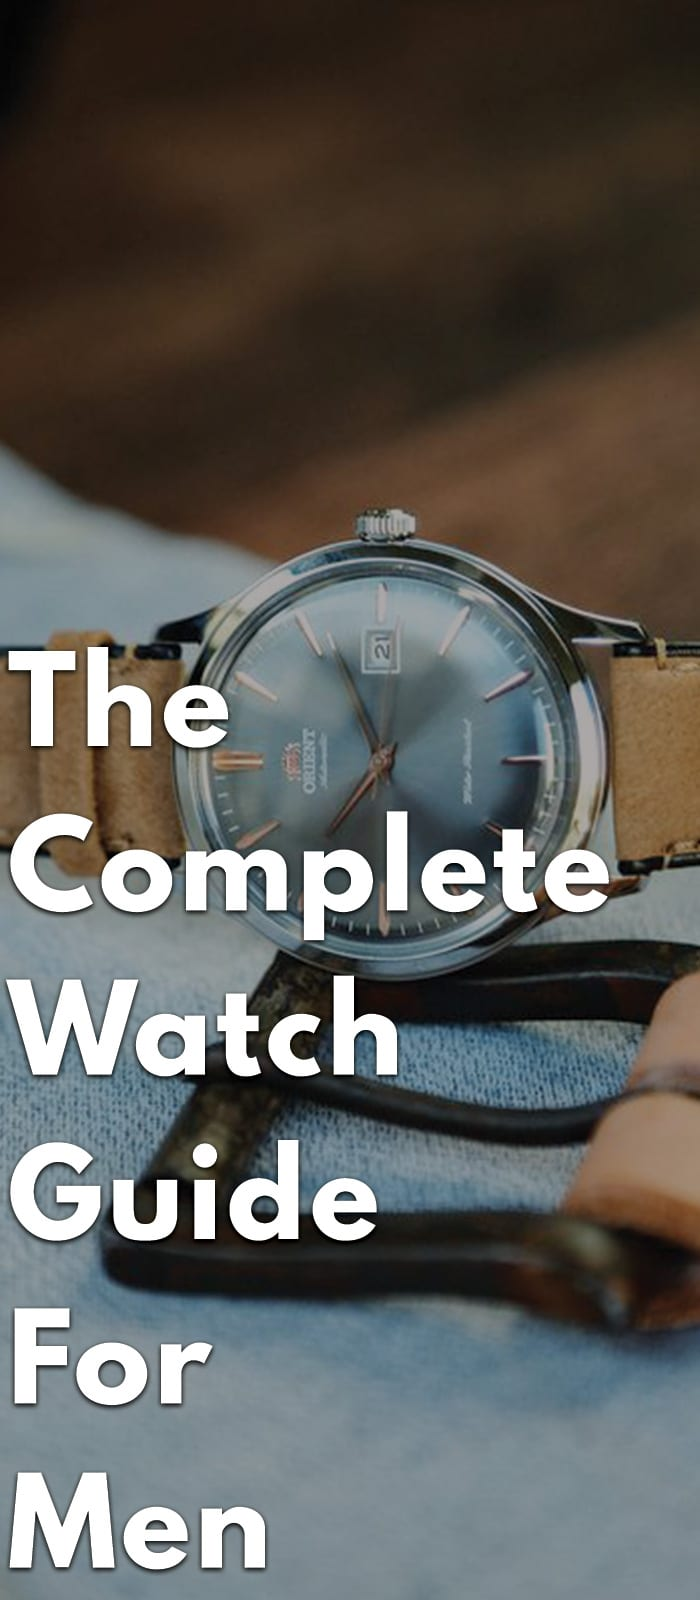 Complete Watch Guide